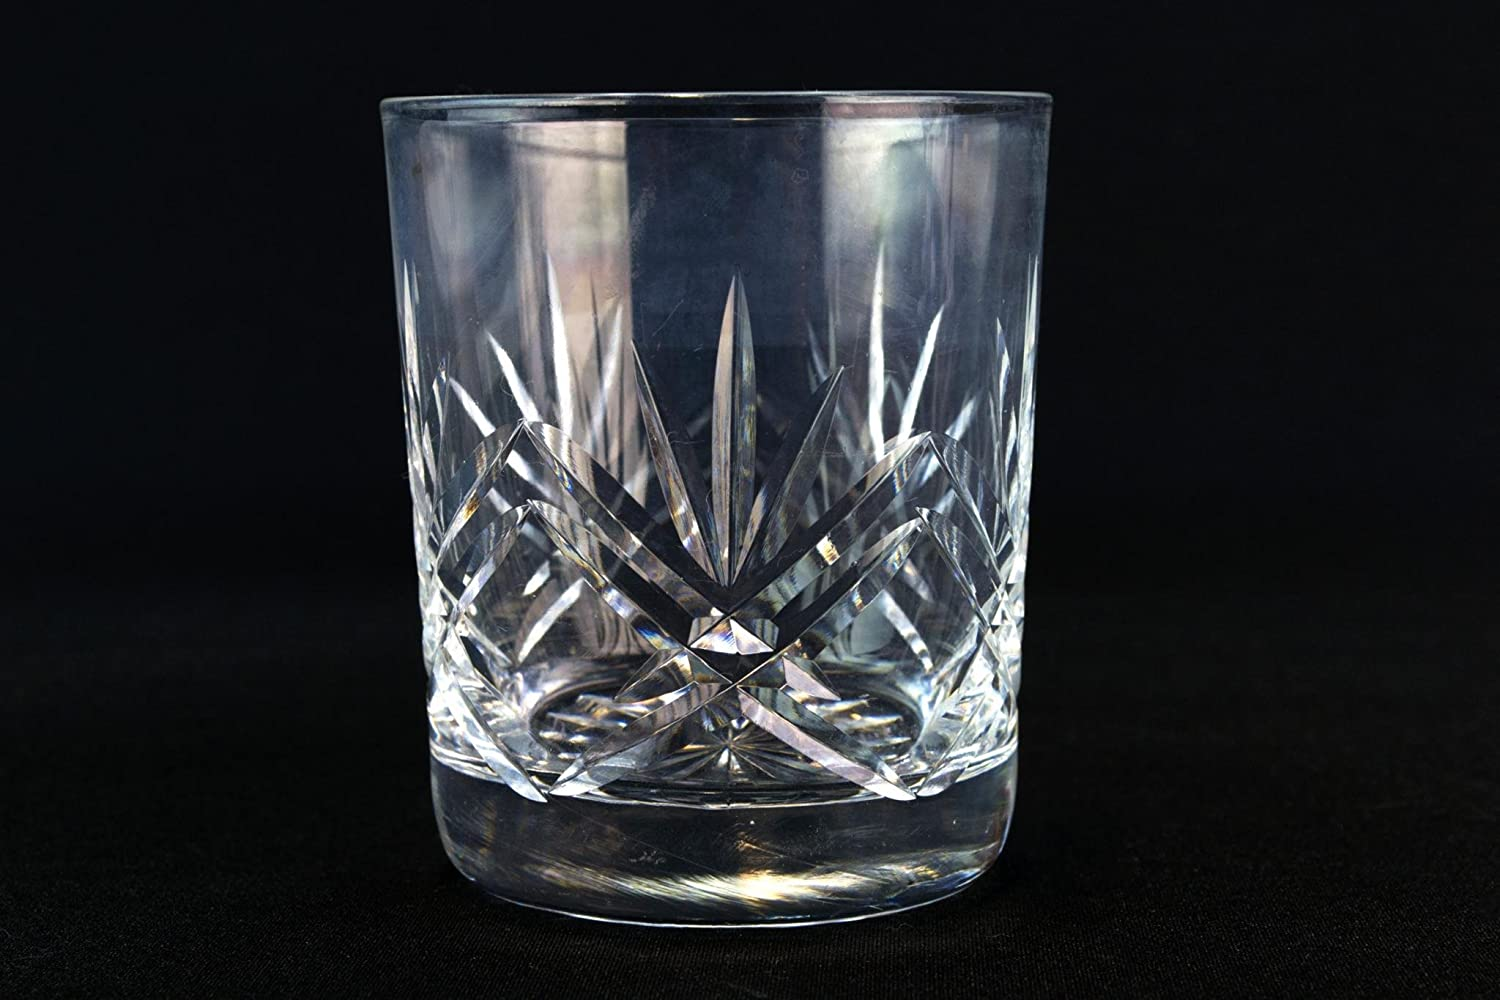 7.5 cm VintageTro Lead Crystal Cut Glass Smaller Size Whisky Tumblers